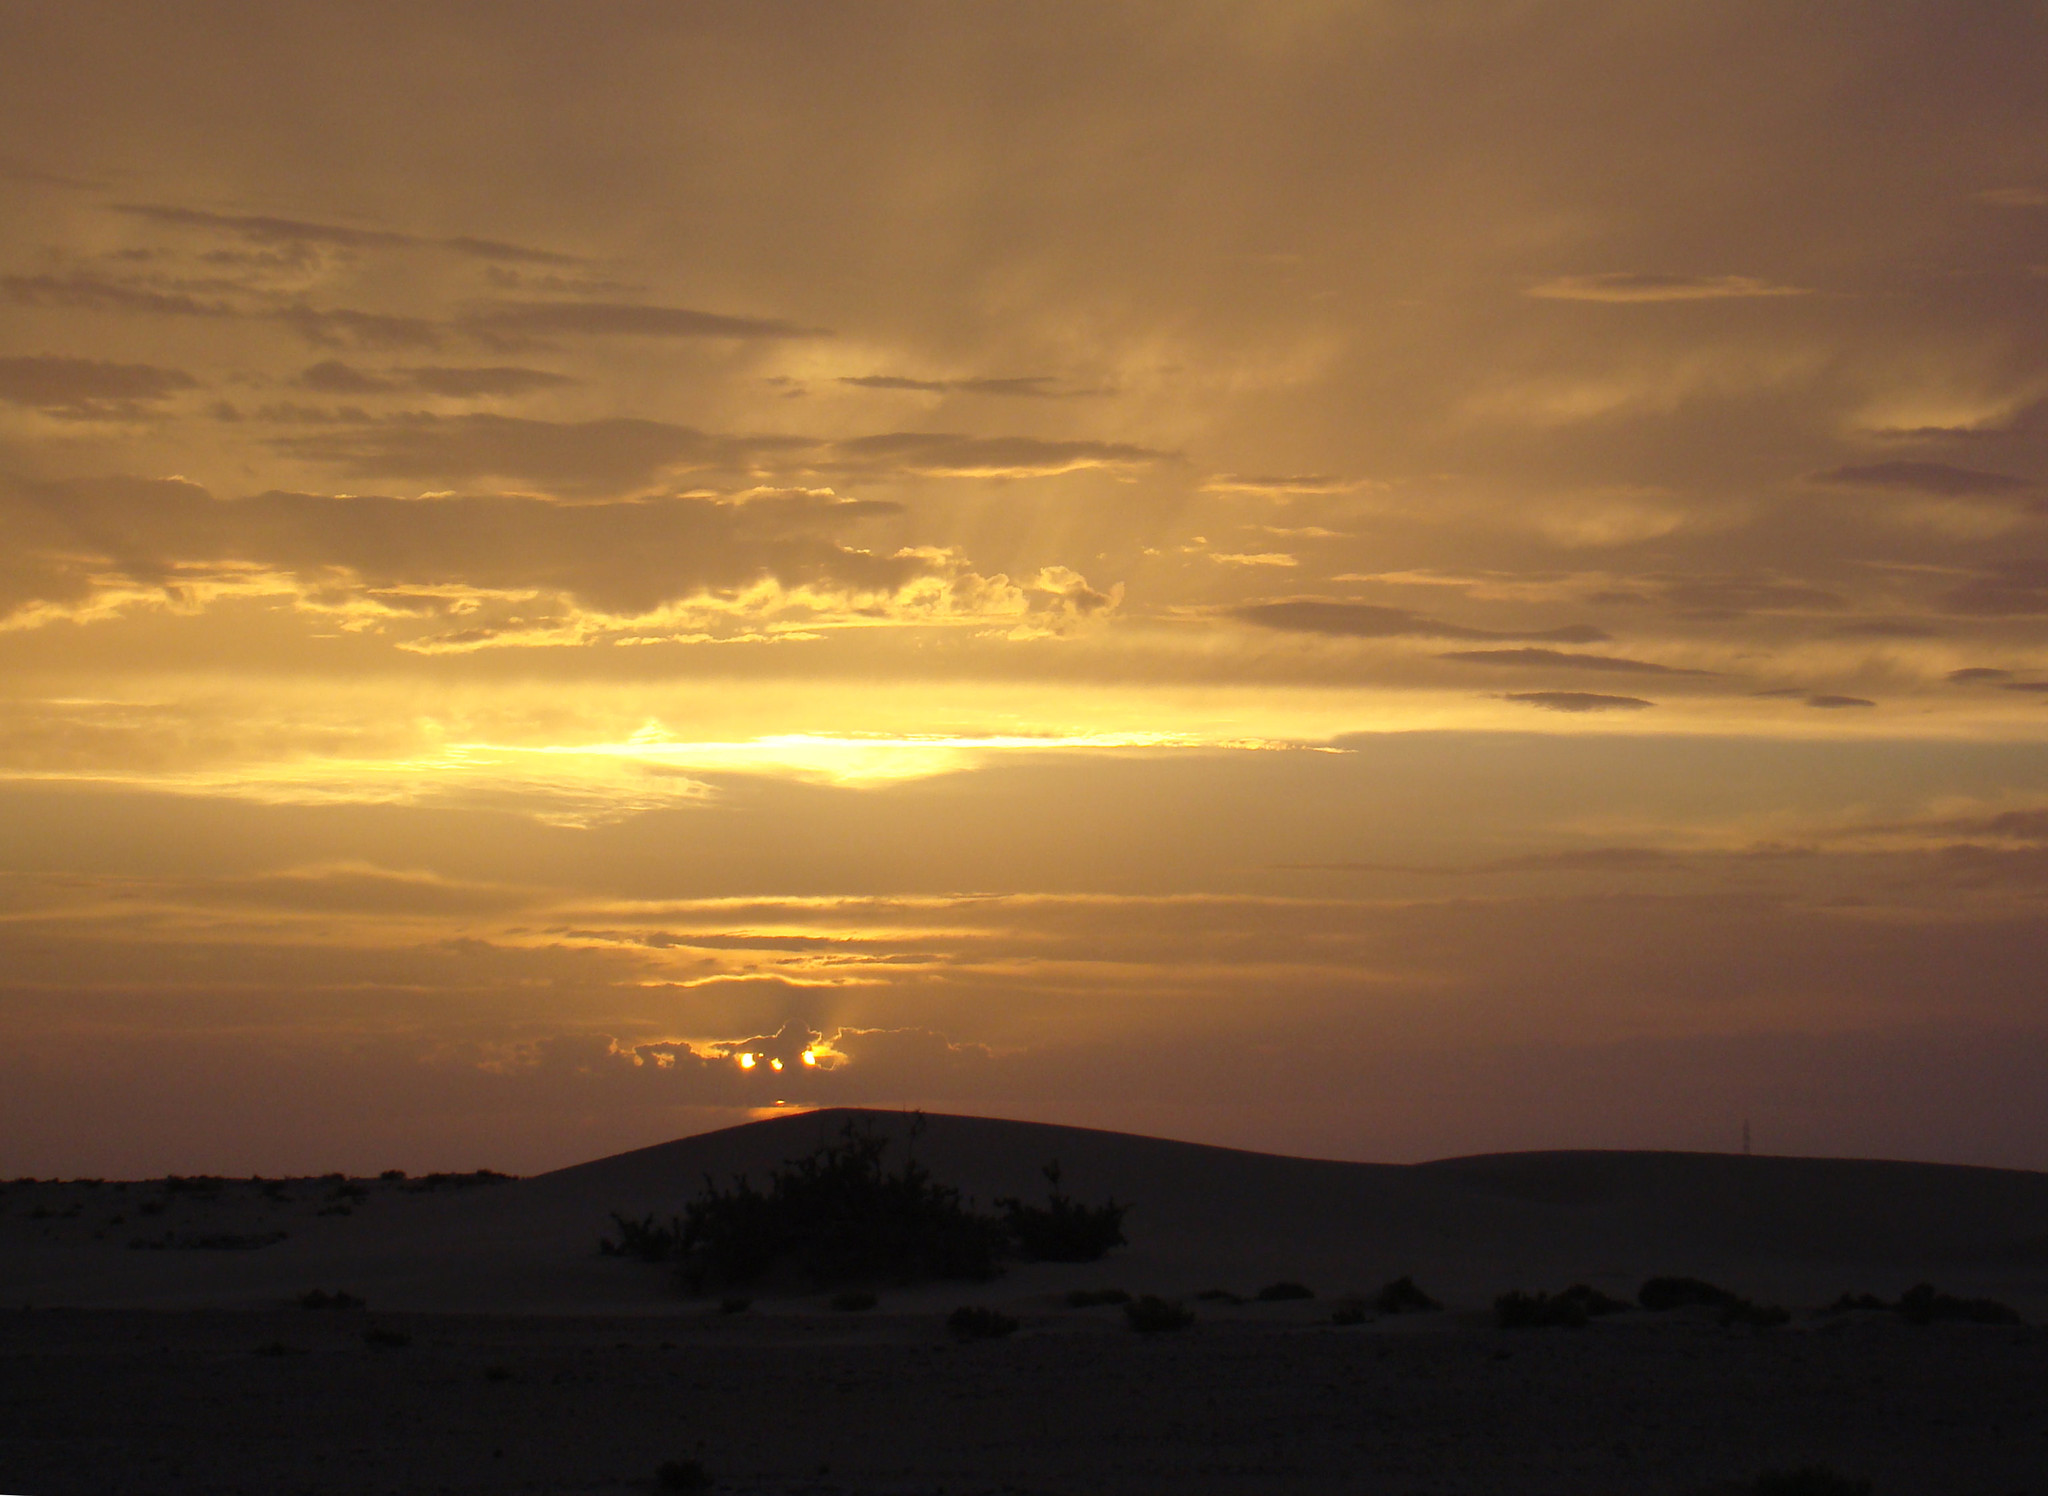 Atardecer en el desierto del Sahara Occidental